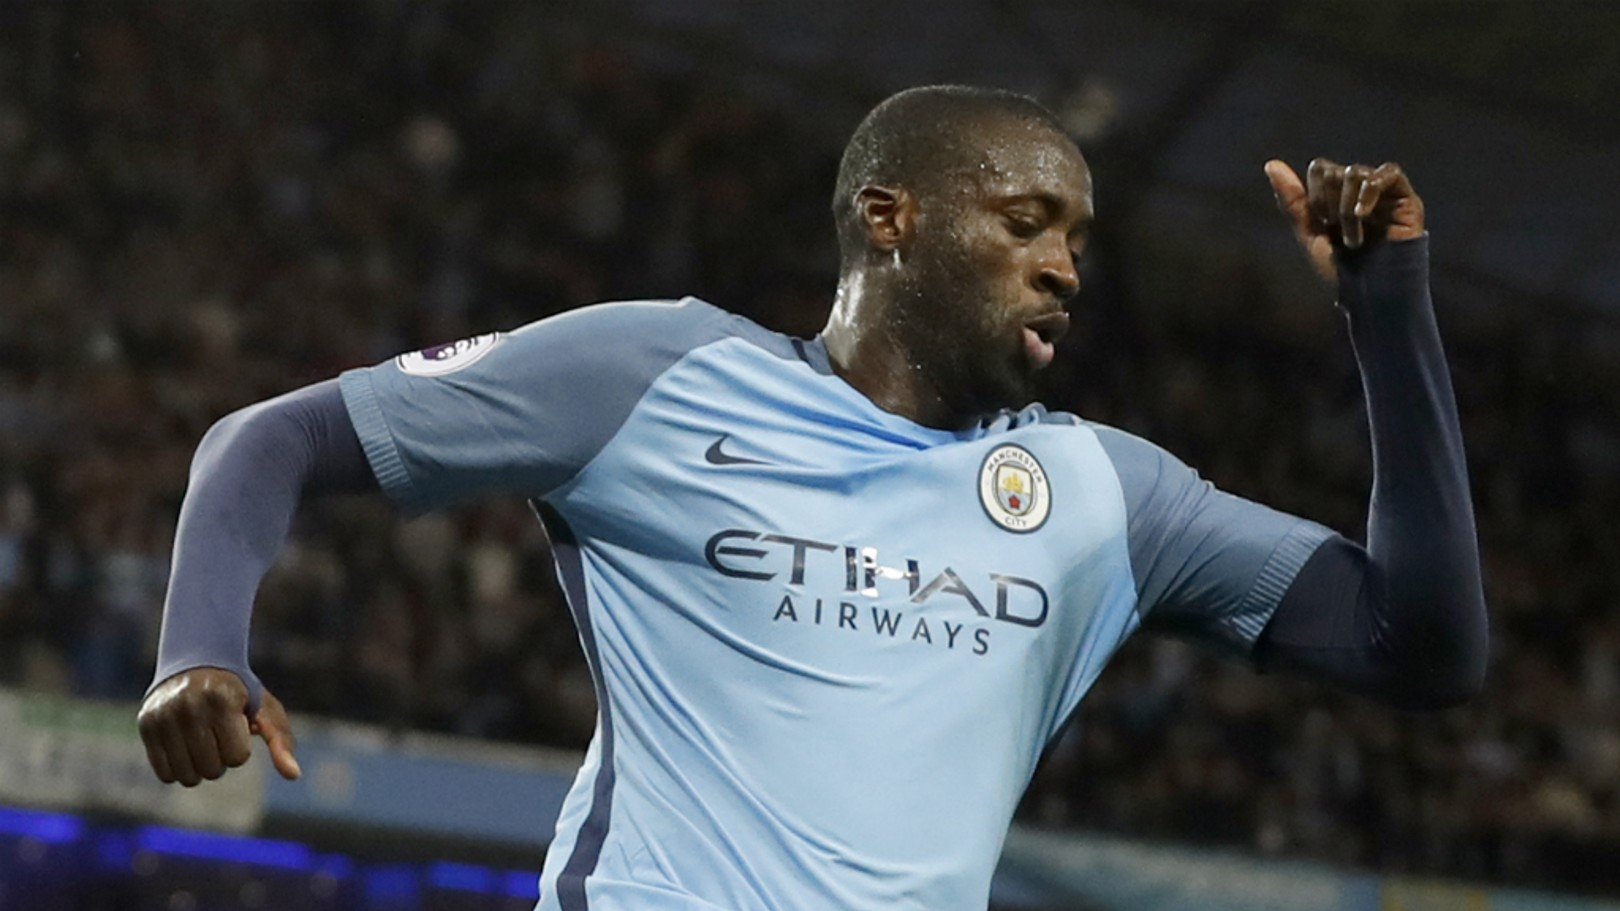 ELATION: Yaya Toure jumps for joy, following his cool finish for City's third